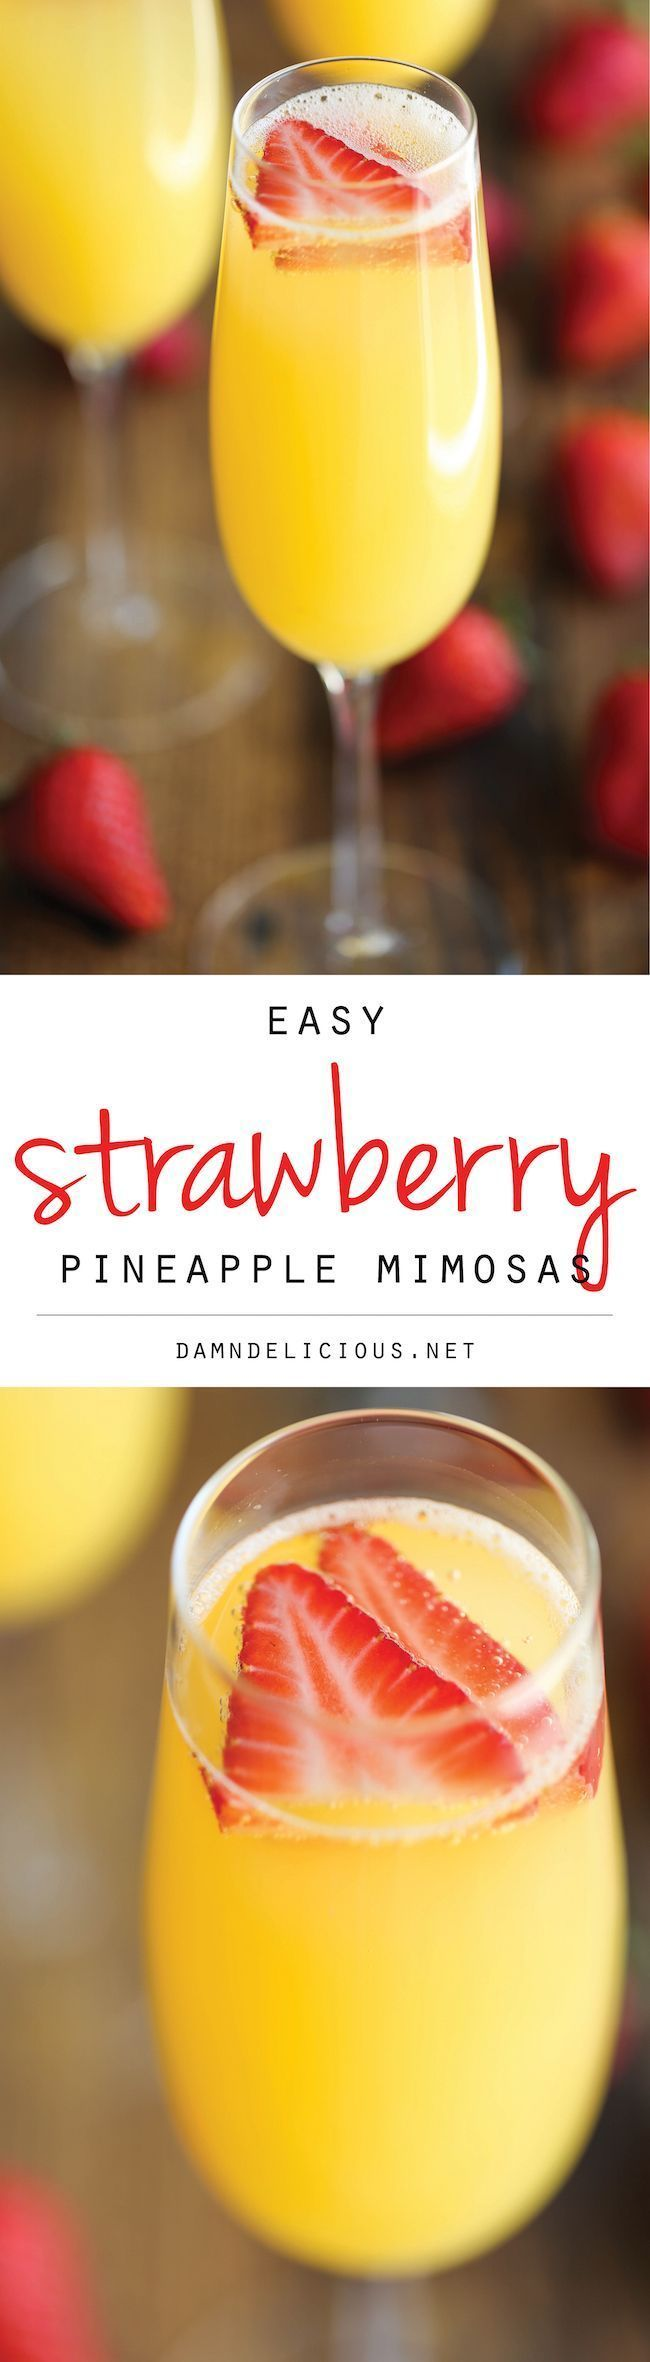 1 1/2 cups orange juice, 1 1/2 cups pineapple juice, 1 (25.4-ounce) bottle sparkling white wine, chilled 1/2 cup strawberries, thinly sliced